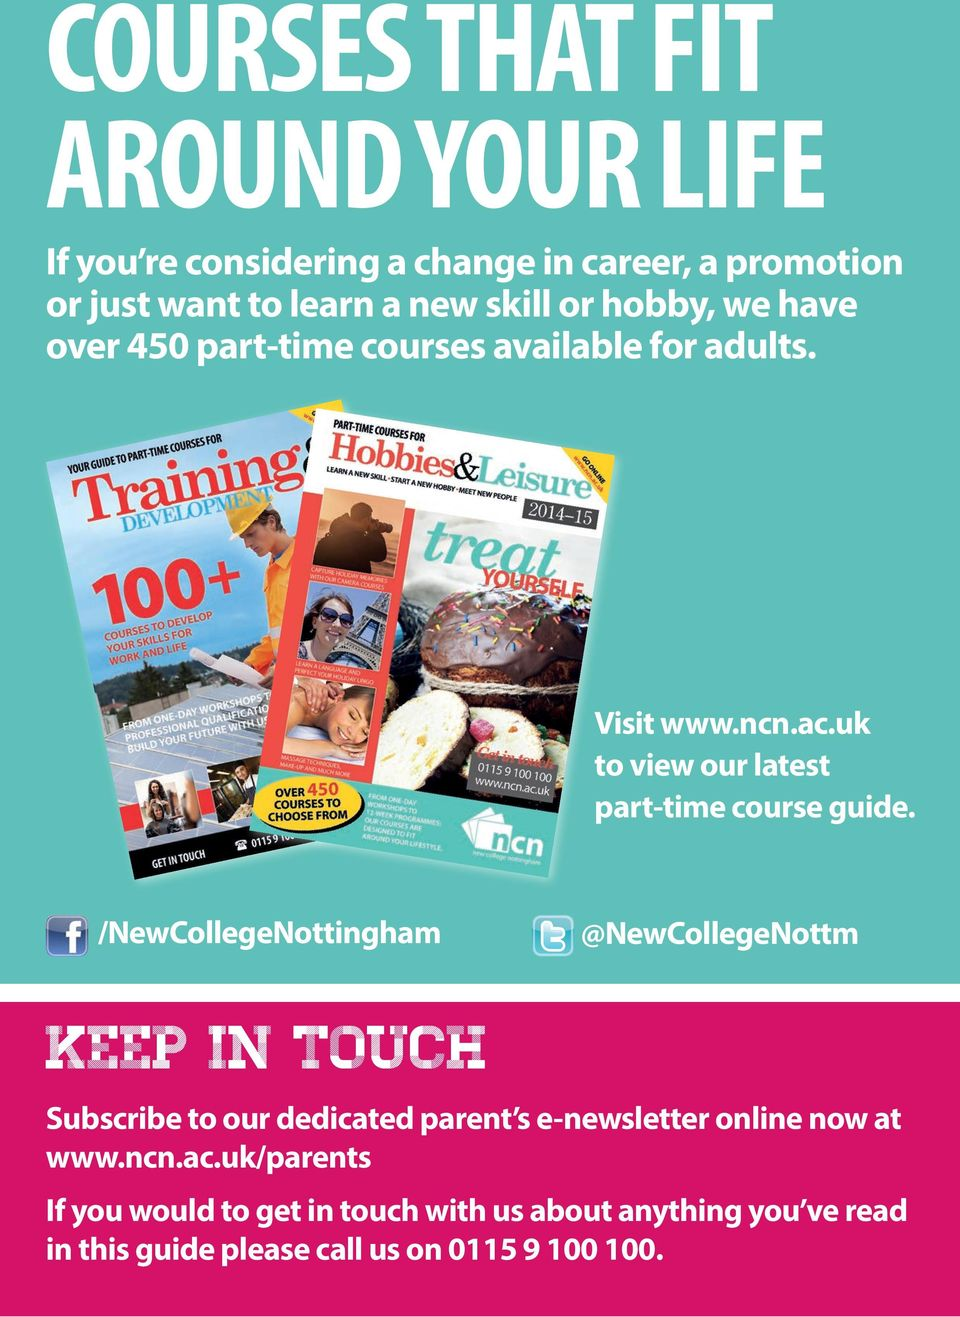 /NewCollegeNottingham @NewCollegeNottm keep in touch Subscribe to our dedicated parent s e-newsletter online now at www.ncn.